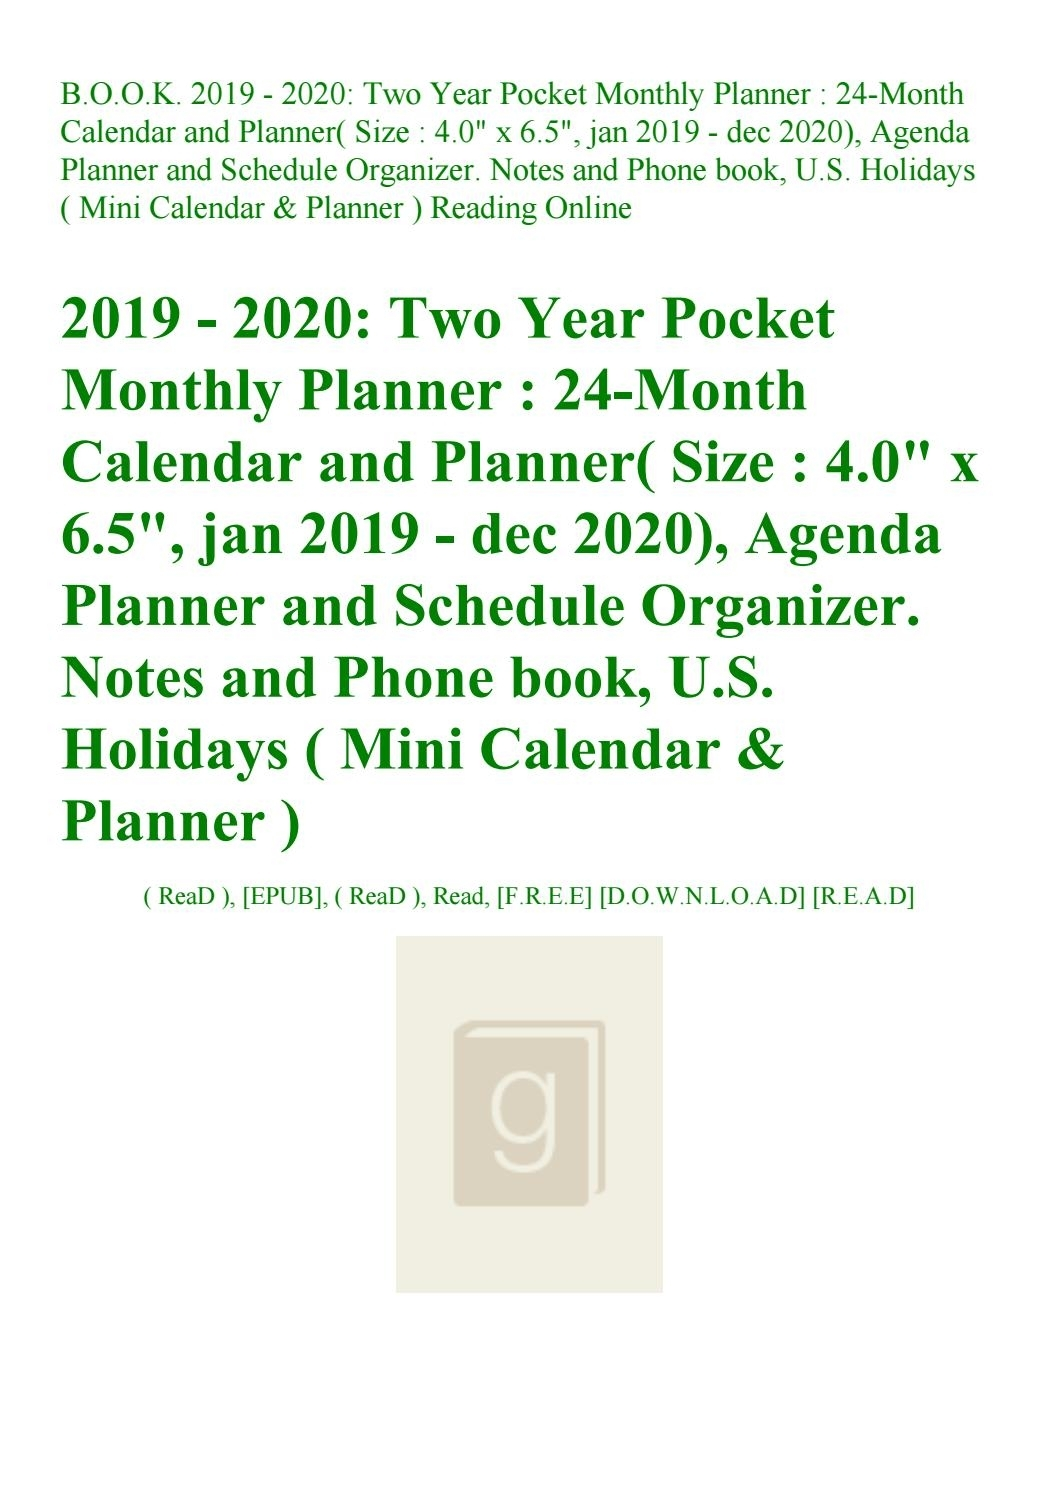 Read B.o.o.k. 2019 - 2020 Two Year Pocket Monthly Planner 24-Month within U Of R Calendar 2019-2020